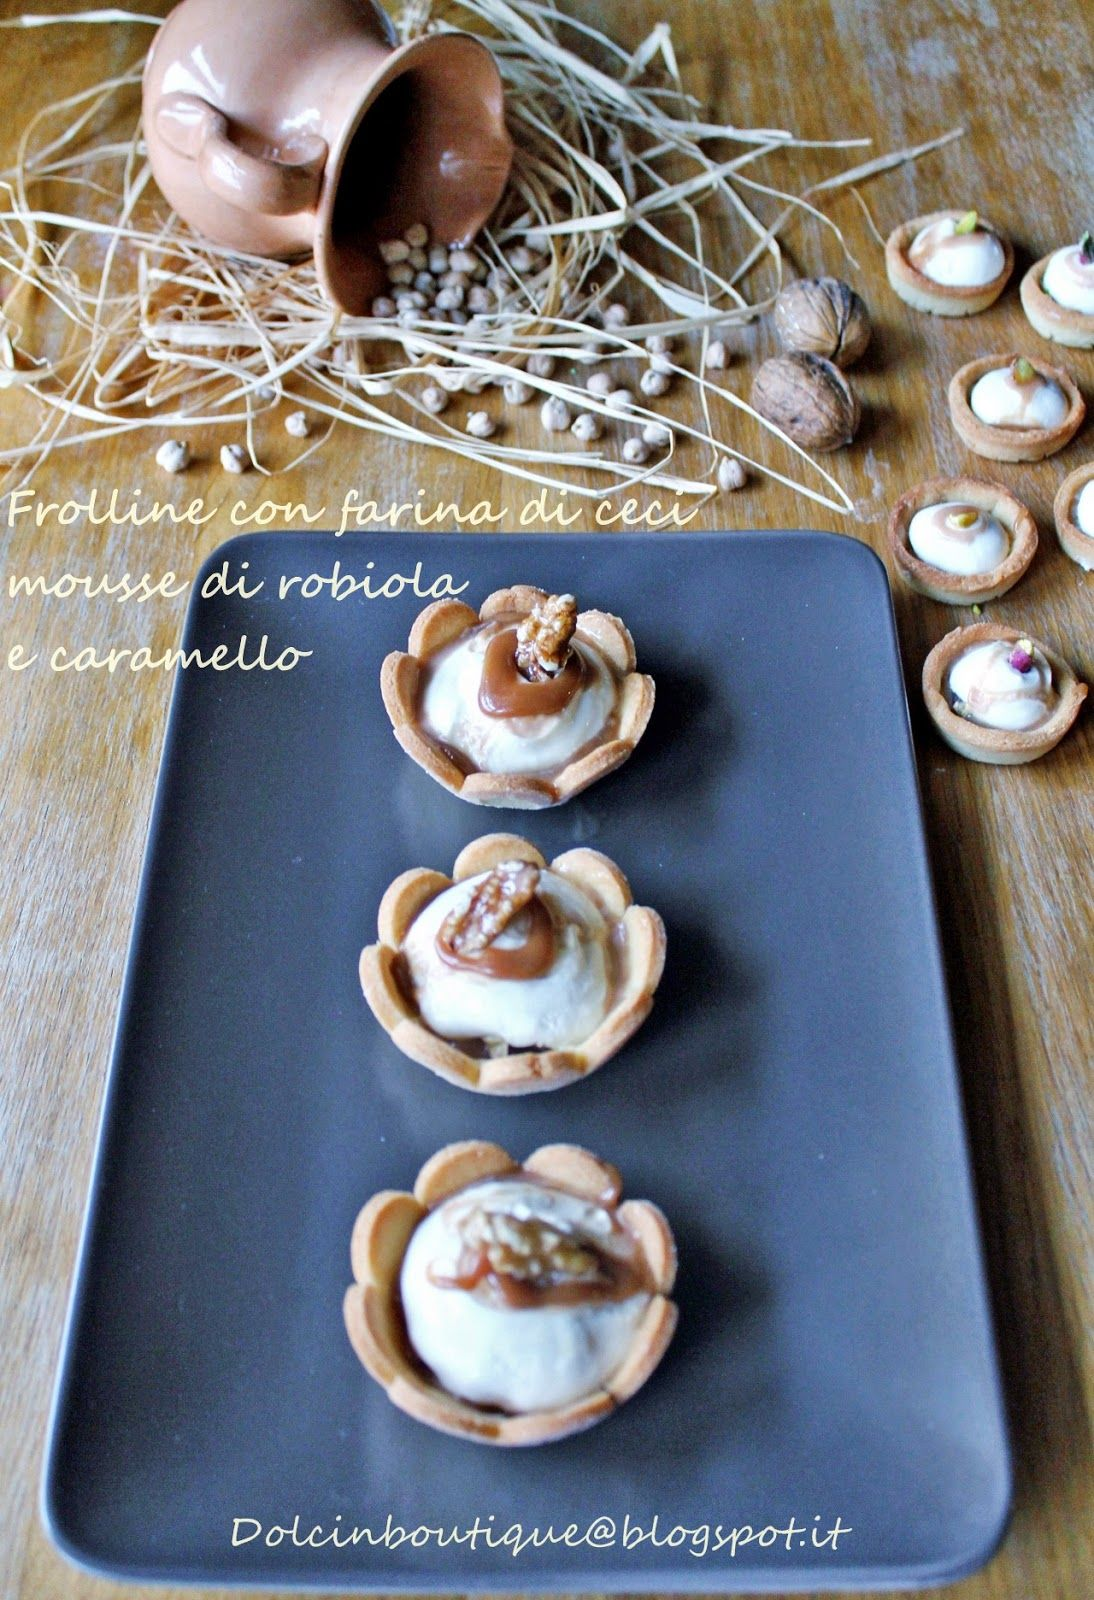 mini sweet pie chickpeas and robiola cheese